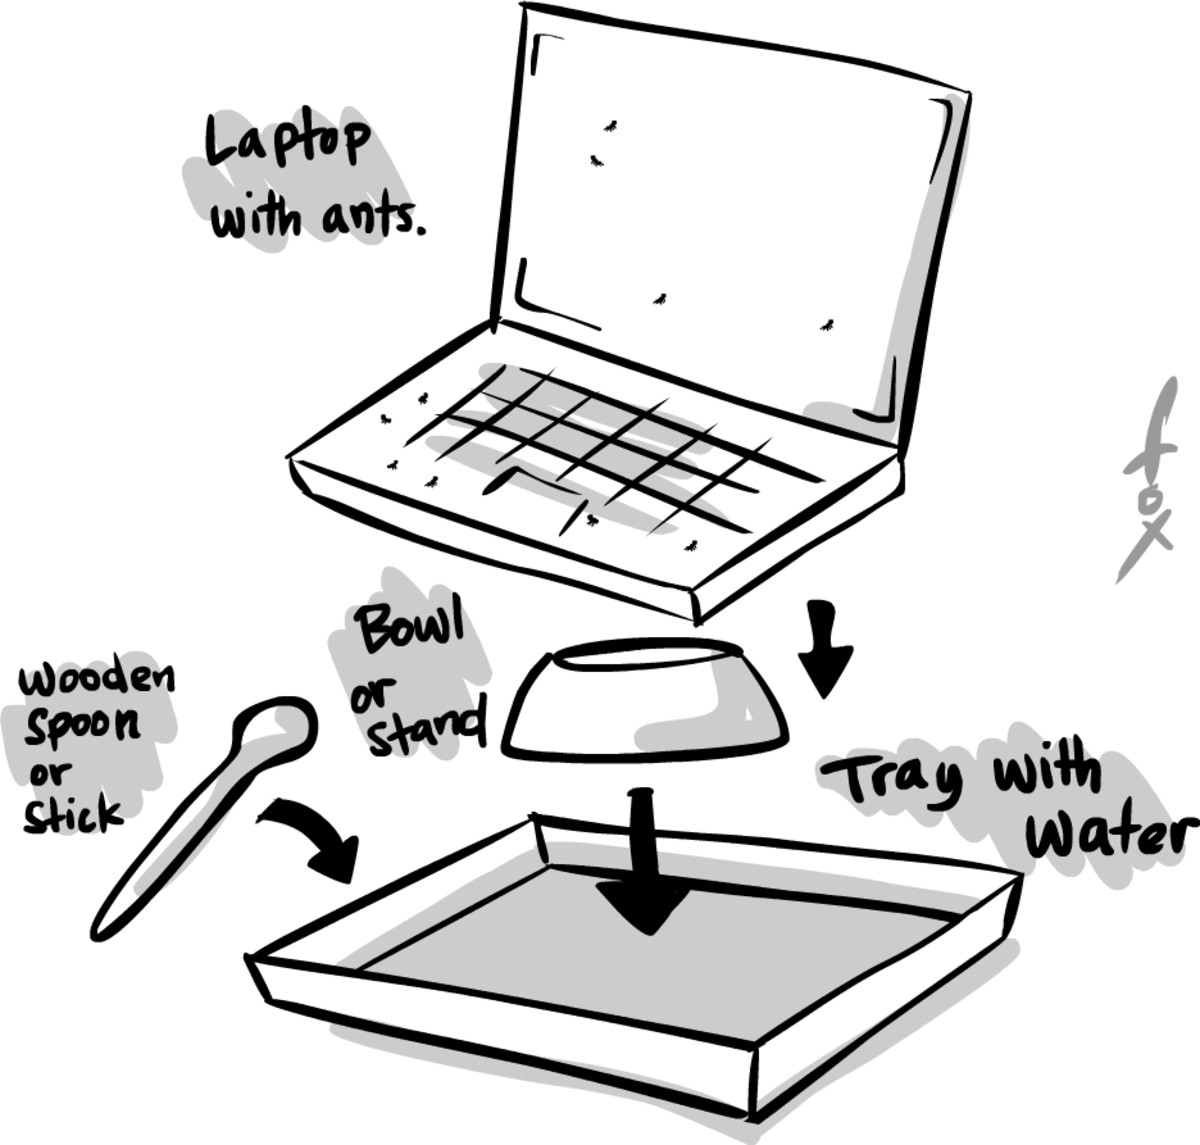 Assembling your laptop ants solution.